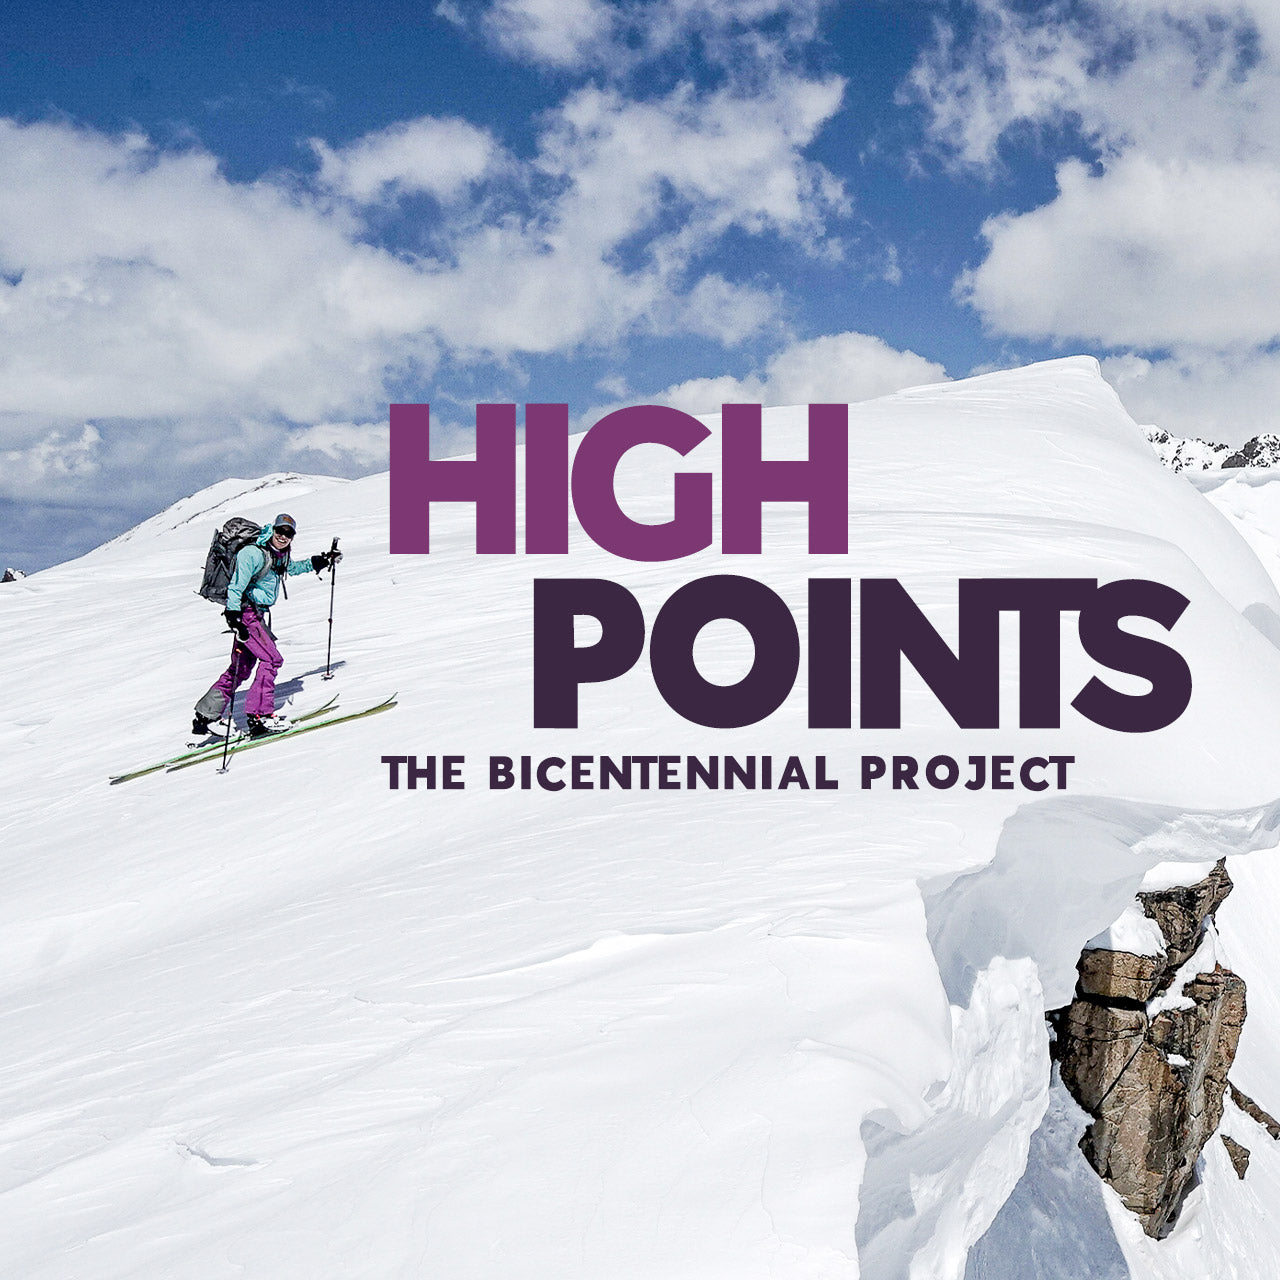 High Points: The Bicentennial Project